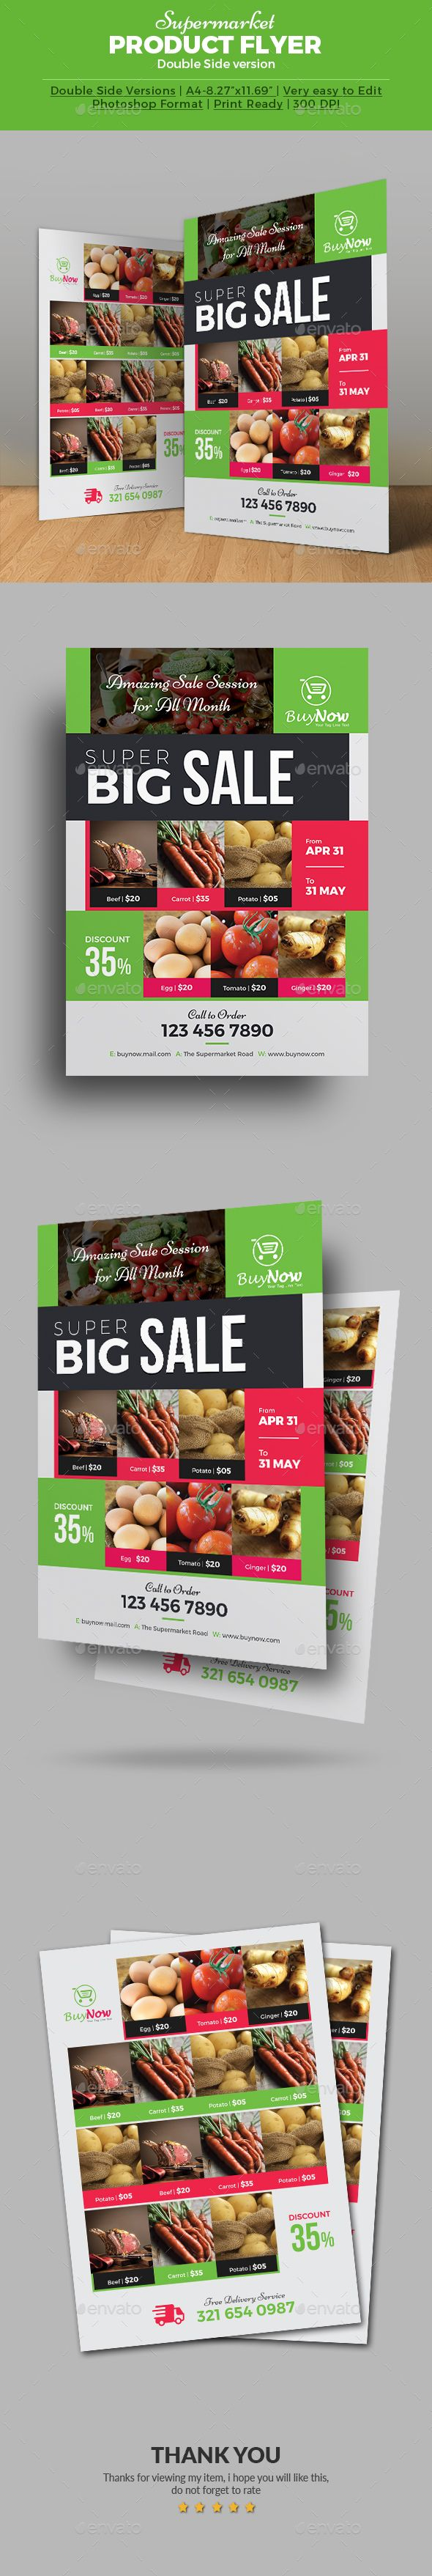 supermarket products flyer templates seasons colors and appliances product flyer